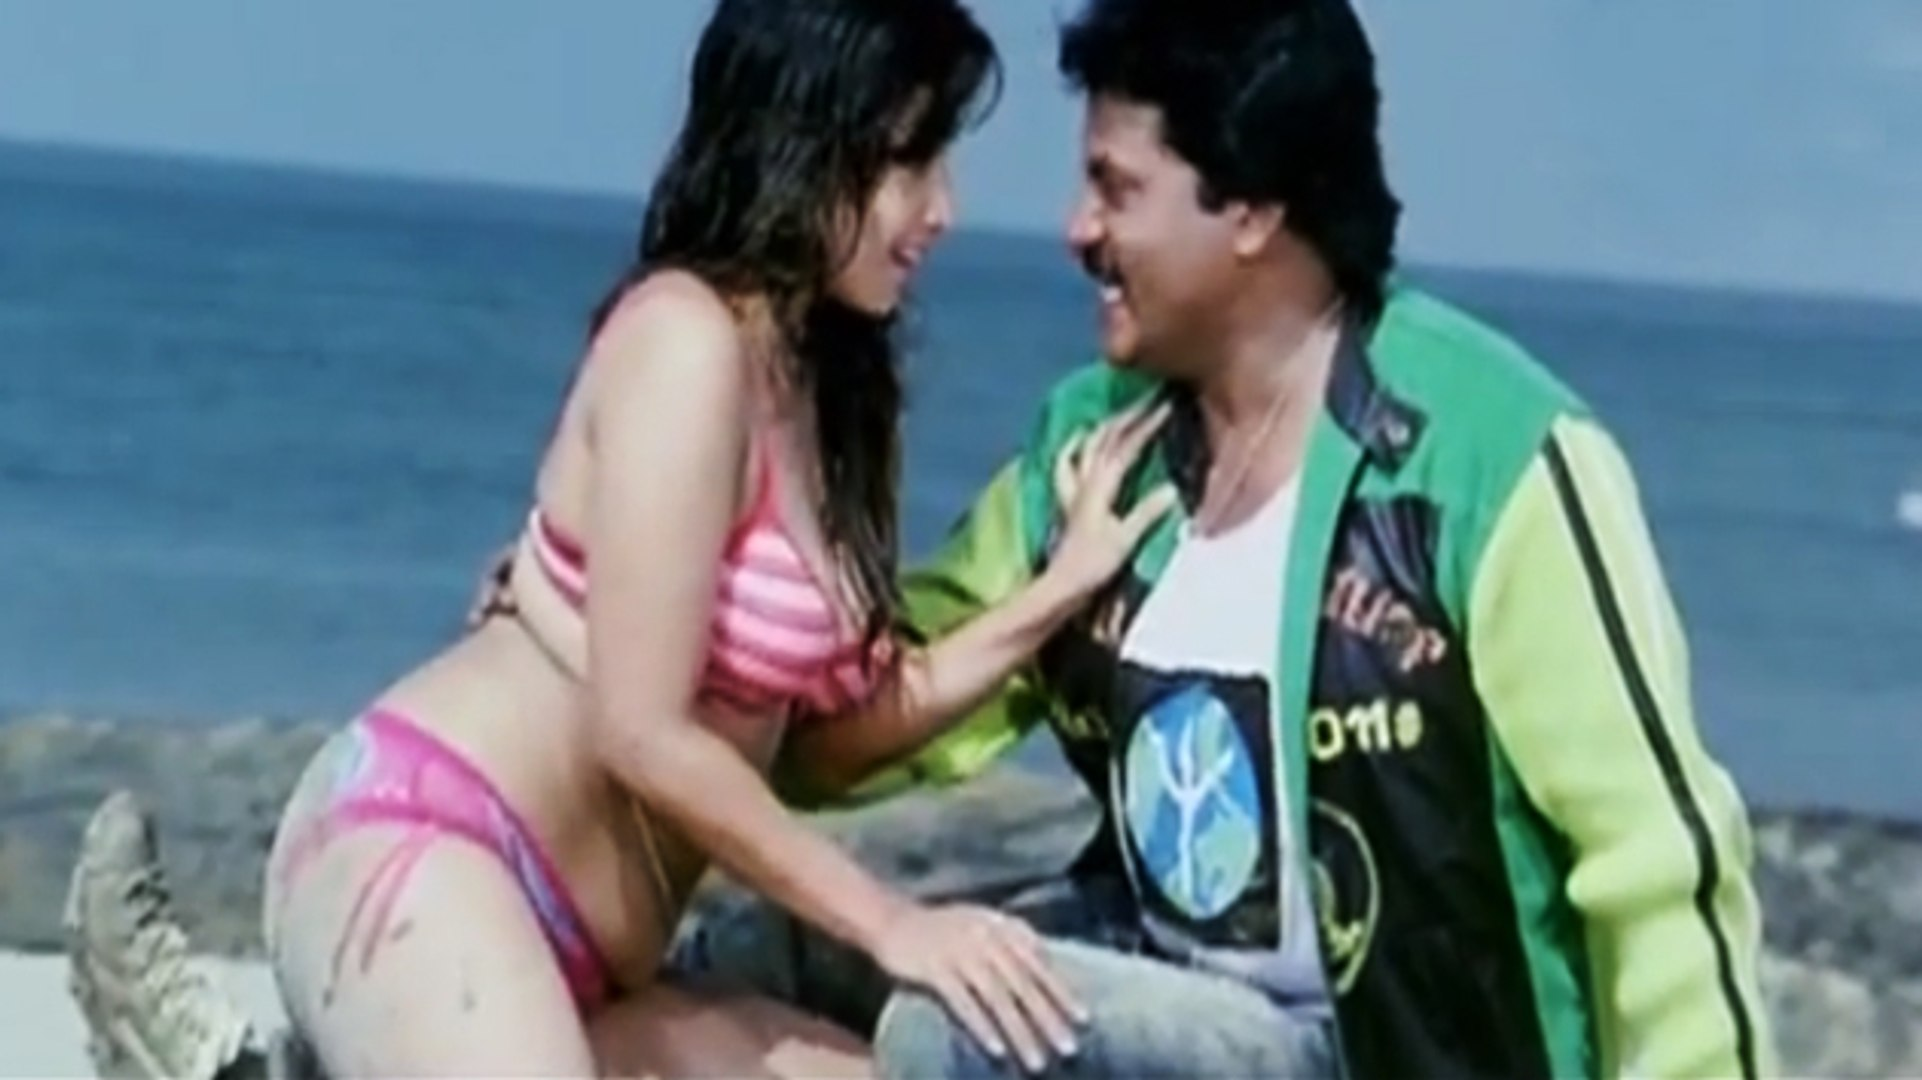 HOT Girl in Bikini | Michael Madana Kamaraju | Telugu Film